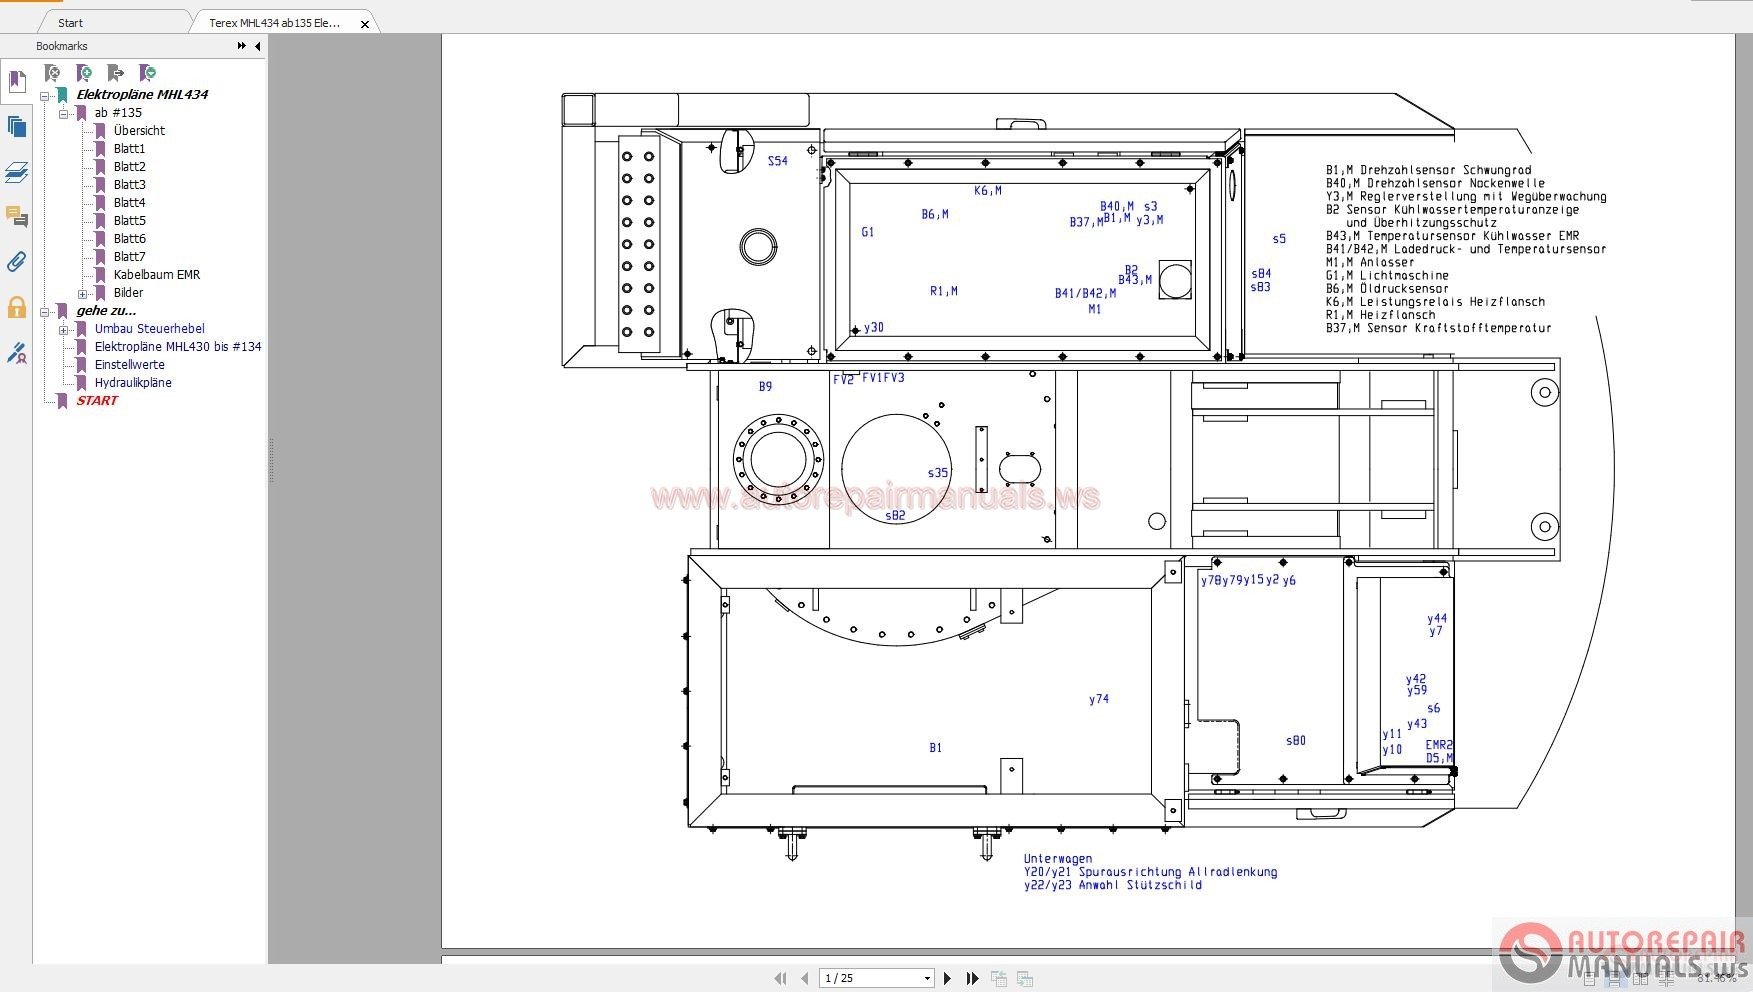 terex mhl434 ab135 electrical diagram